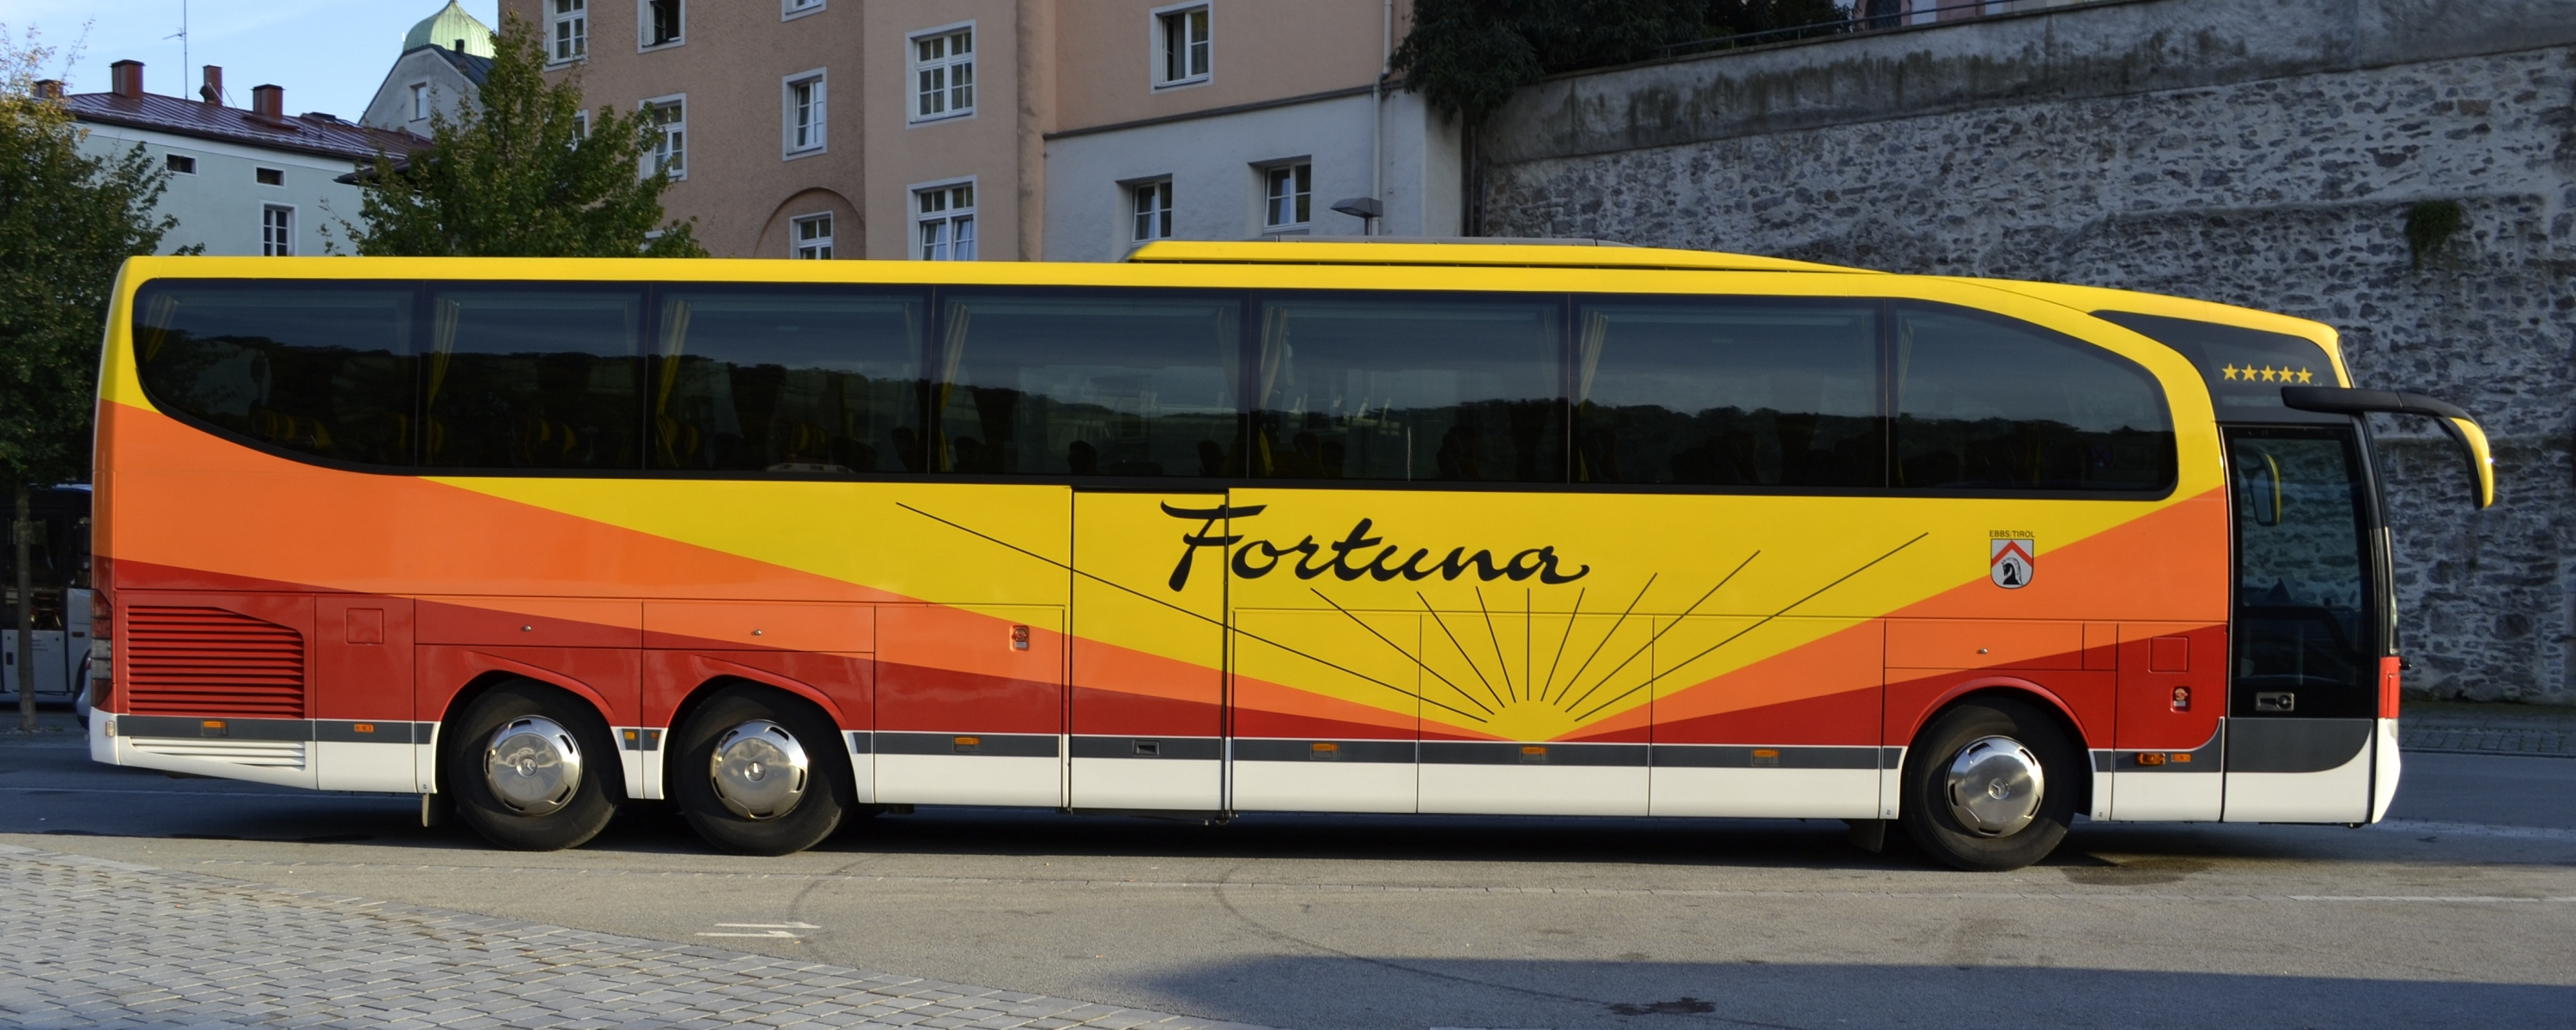 Image gallery 2011 mercedes benz buses for Mercedes benz coach bus price